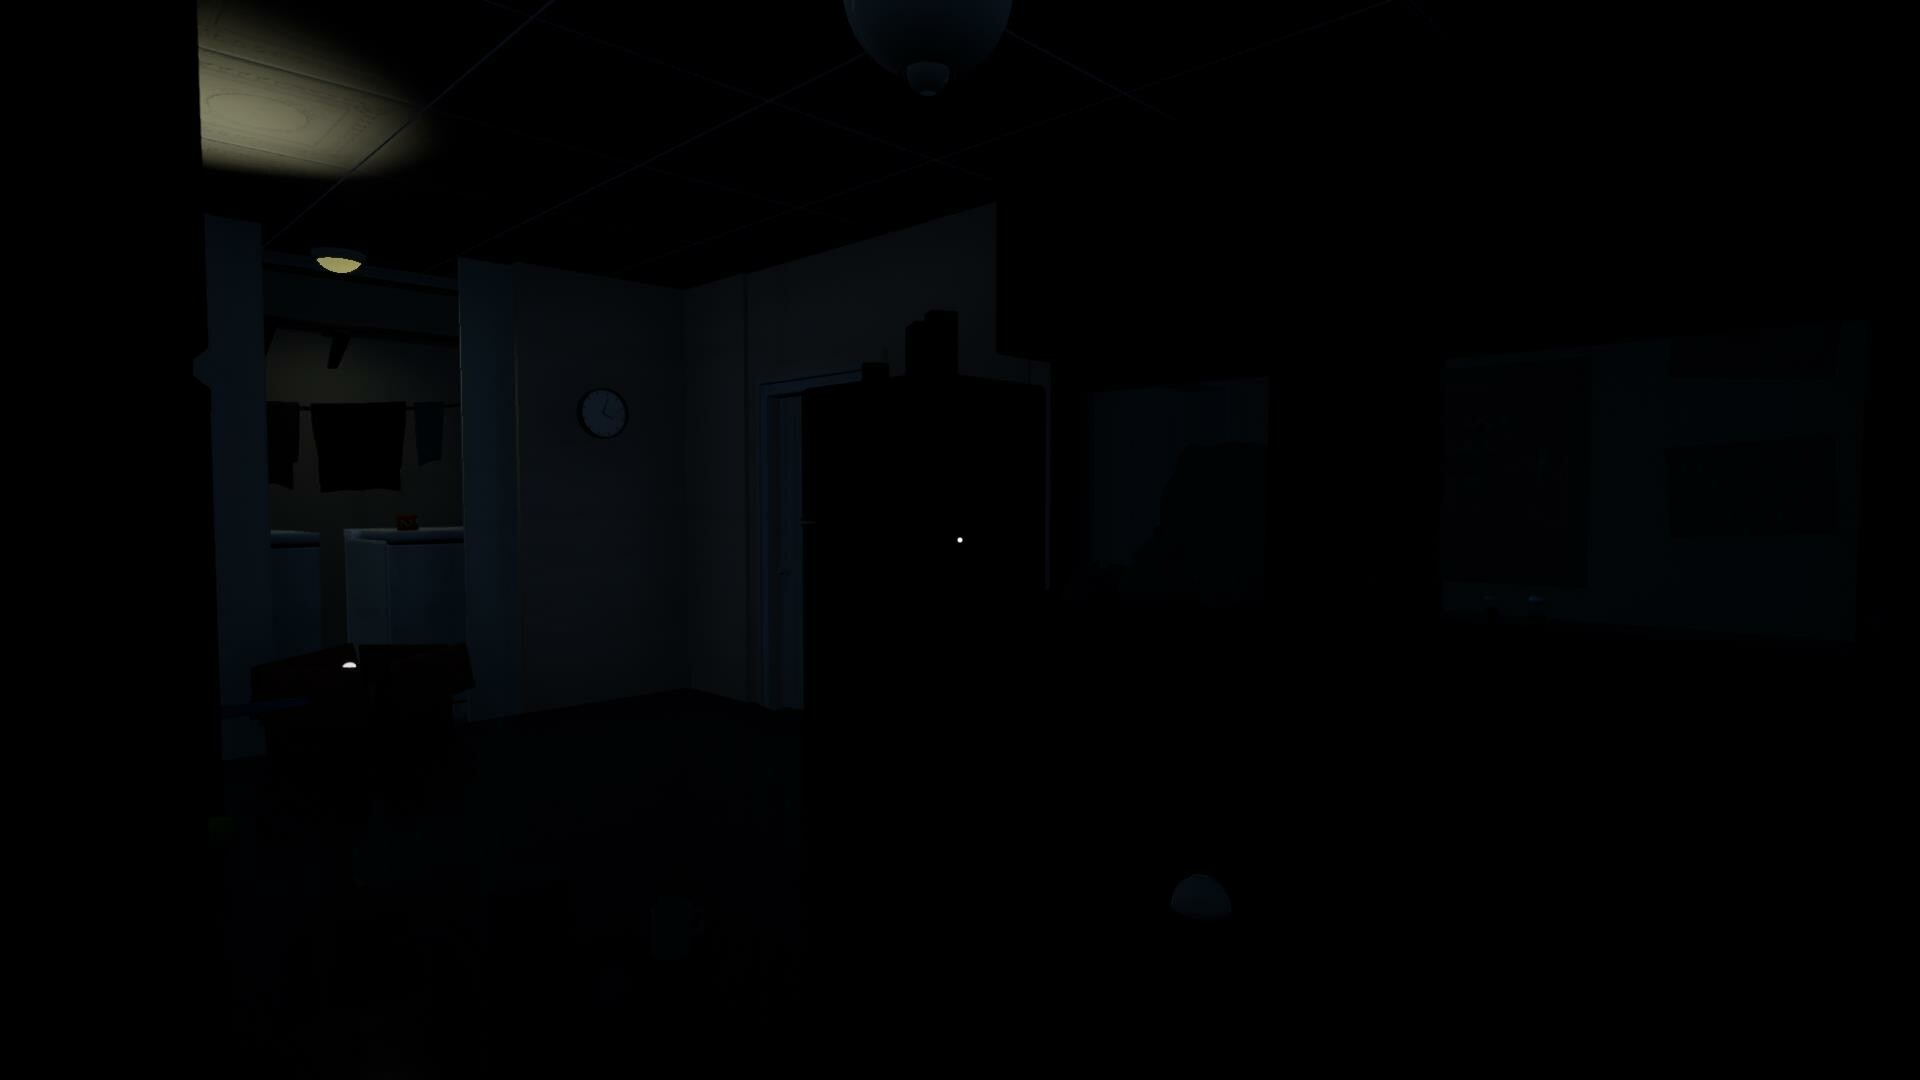 The only light present in this first area is coming from the flashlight which is an important pick up